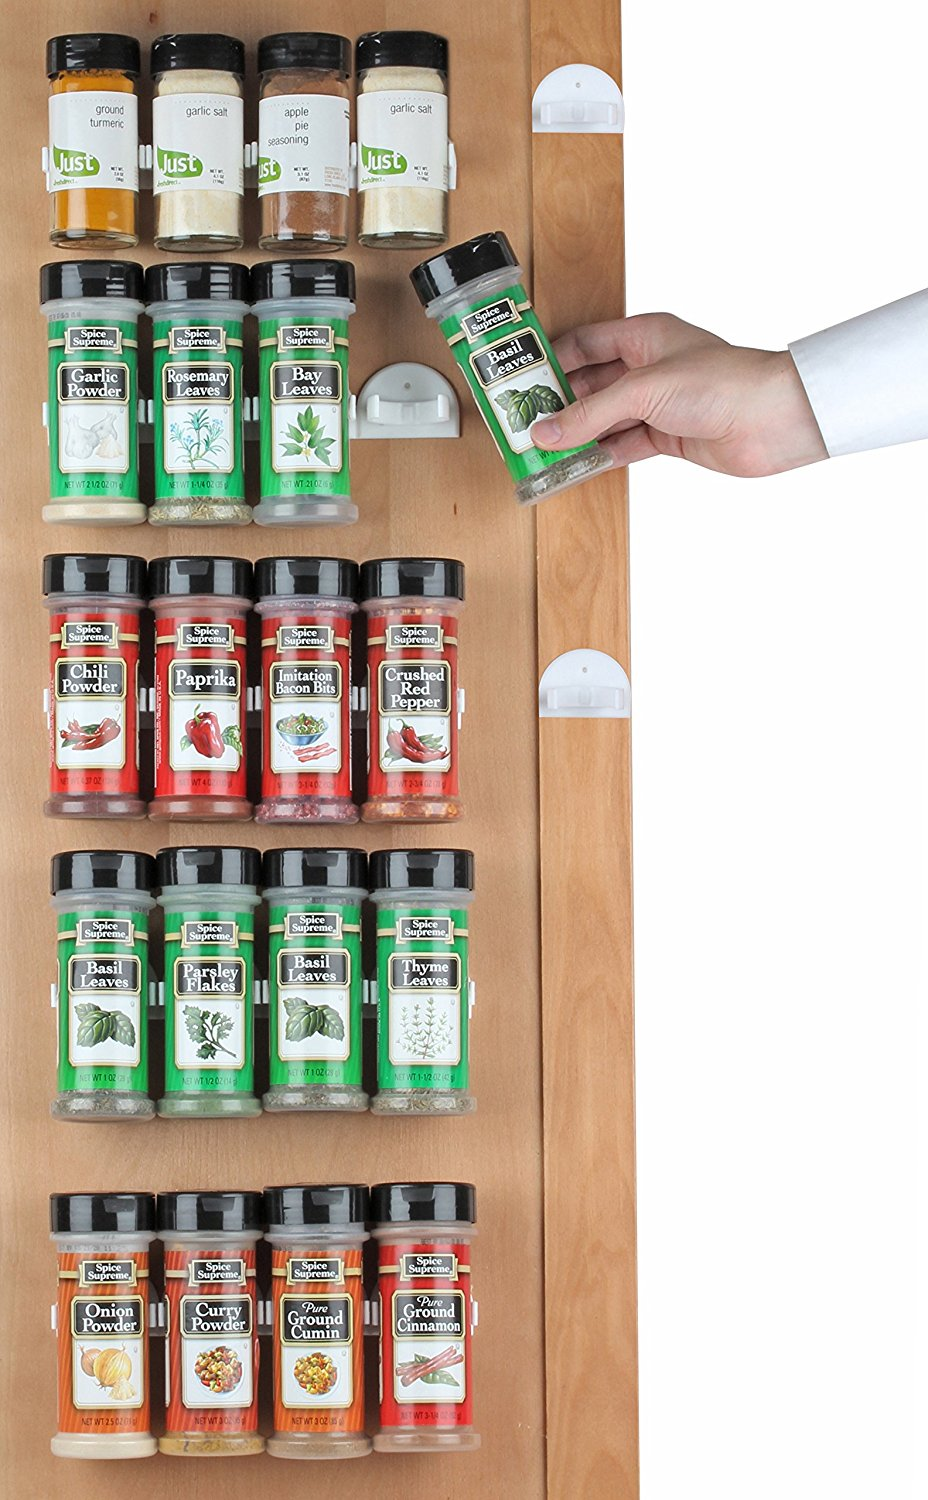 Product Image HousewaresGoods Spice Rack, Spice Racks For 20 Cabinet Door,  Use Spice Clips For Spice